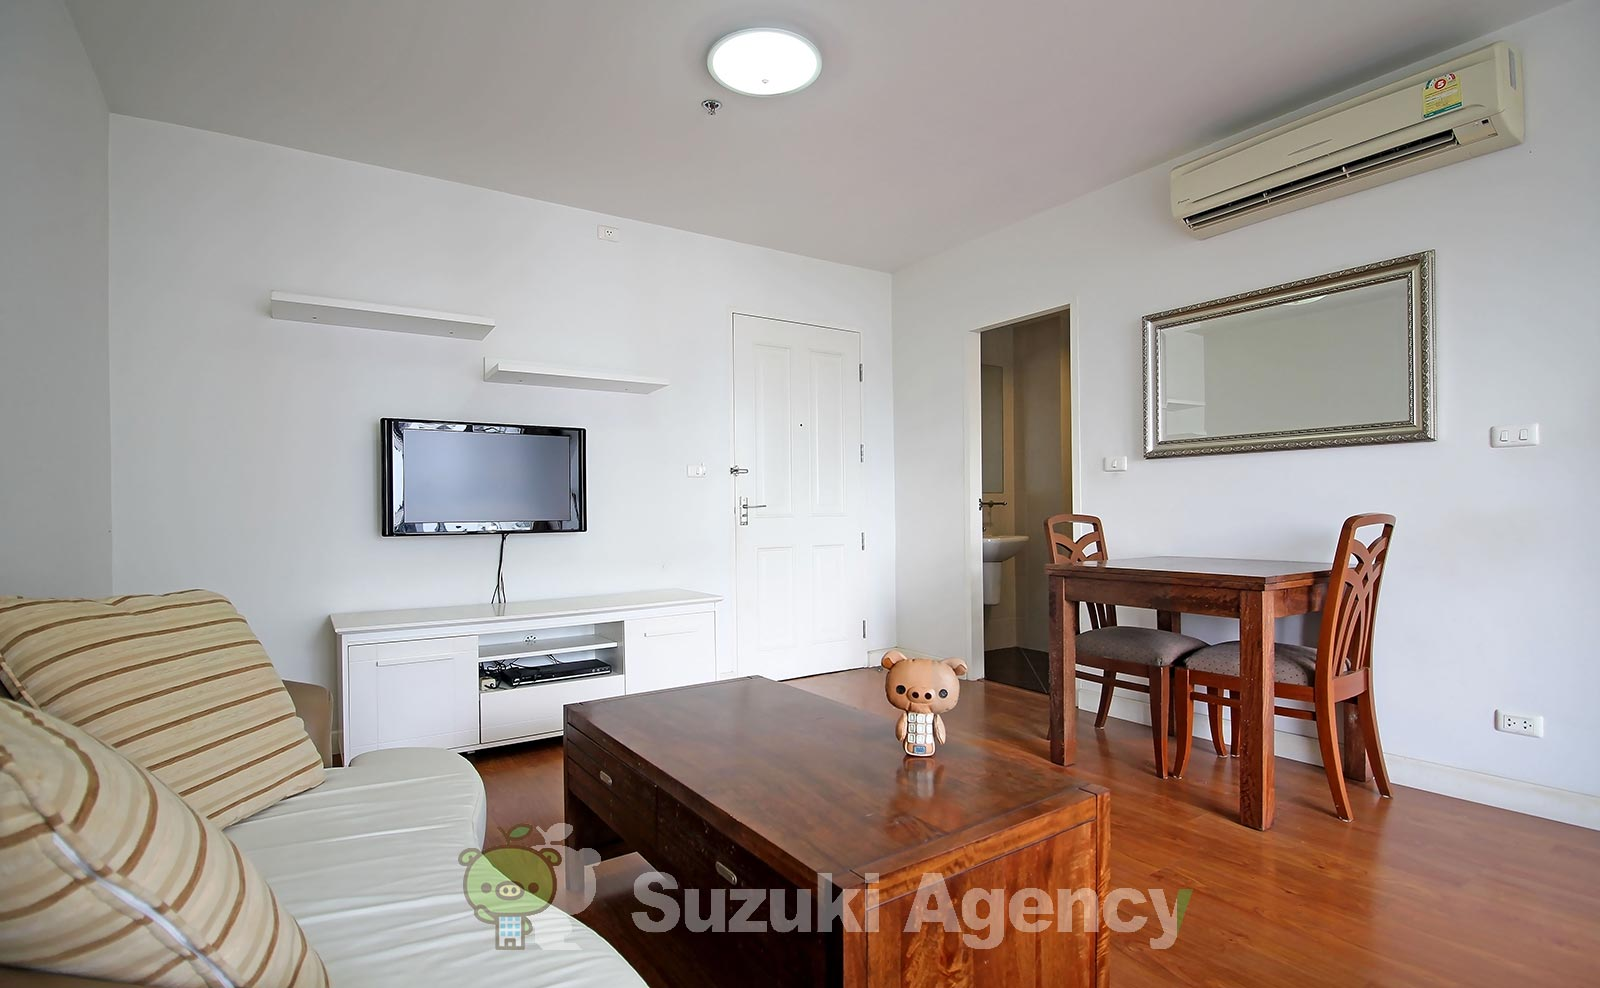 Condo One X Sukhumvit 26:Studio Room Photos No.2